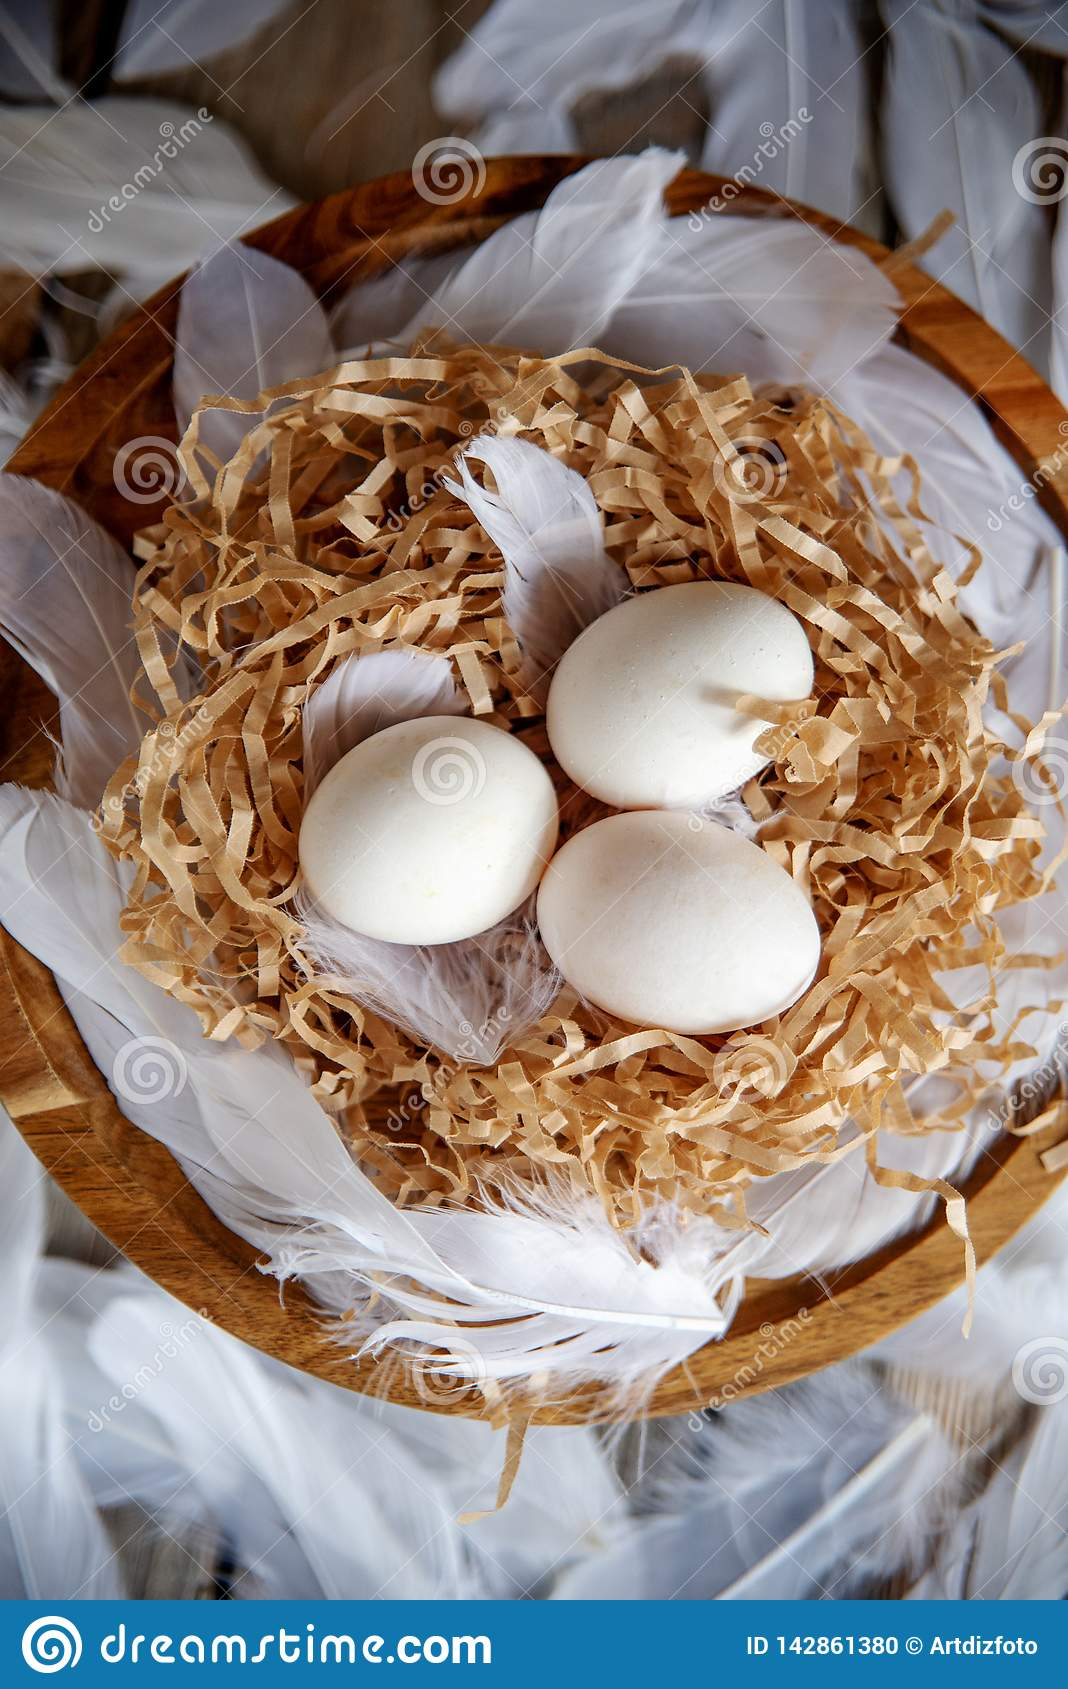 White eggs in a decorative nest on a wooden plate. Easter concept Easter mood